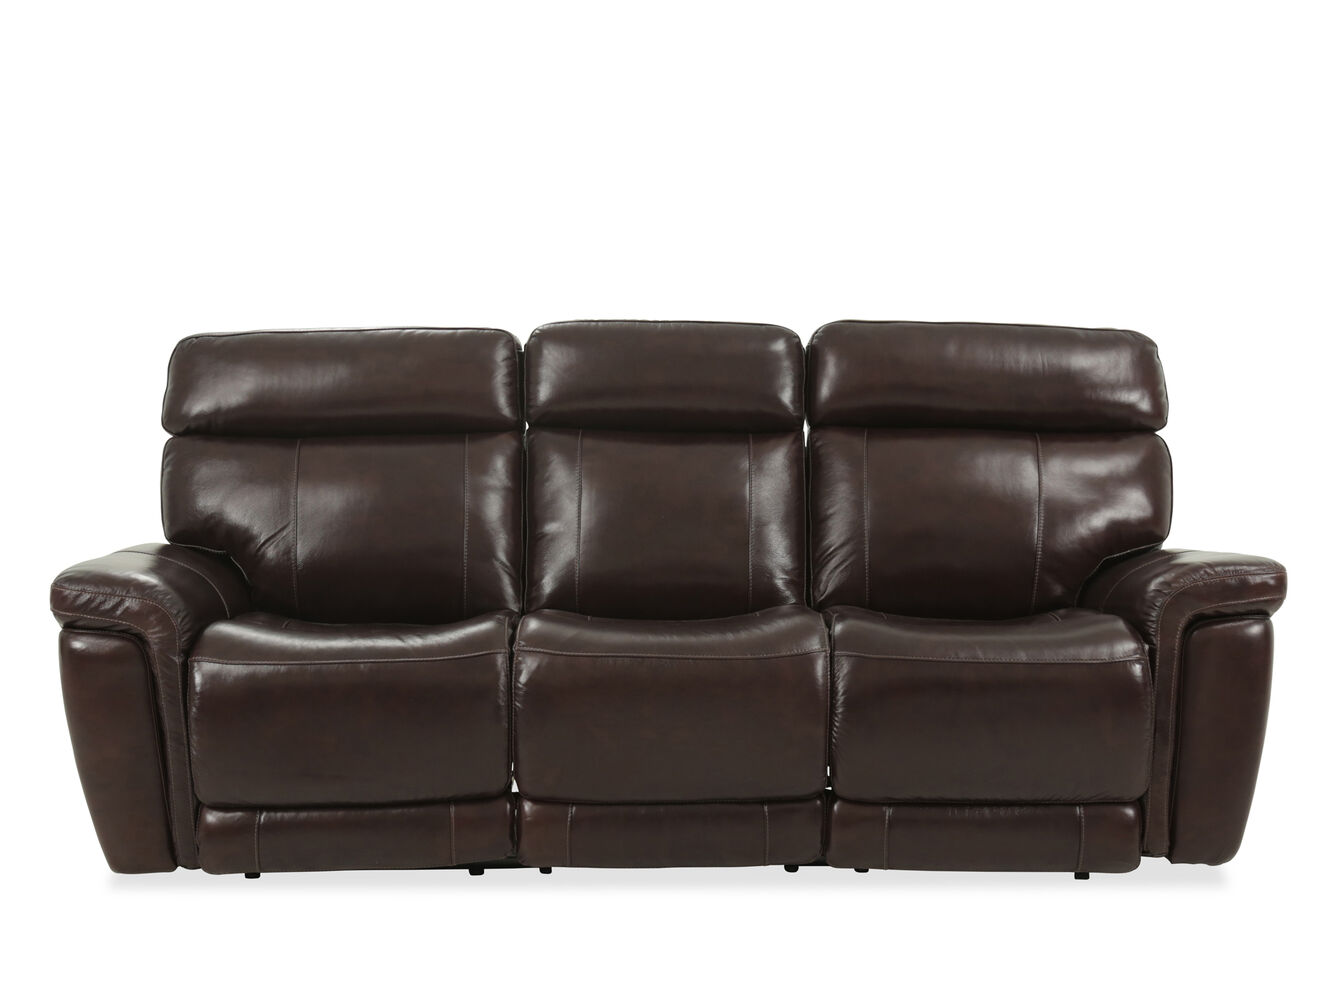 91 leather power reclining sofa in brown mathis brothers furniture. Black Bedroom Furniture Sets. Home Design Ideas